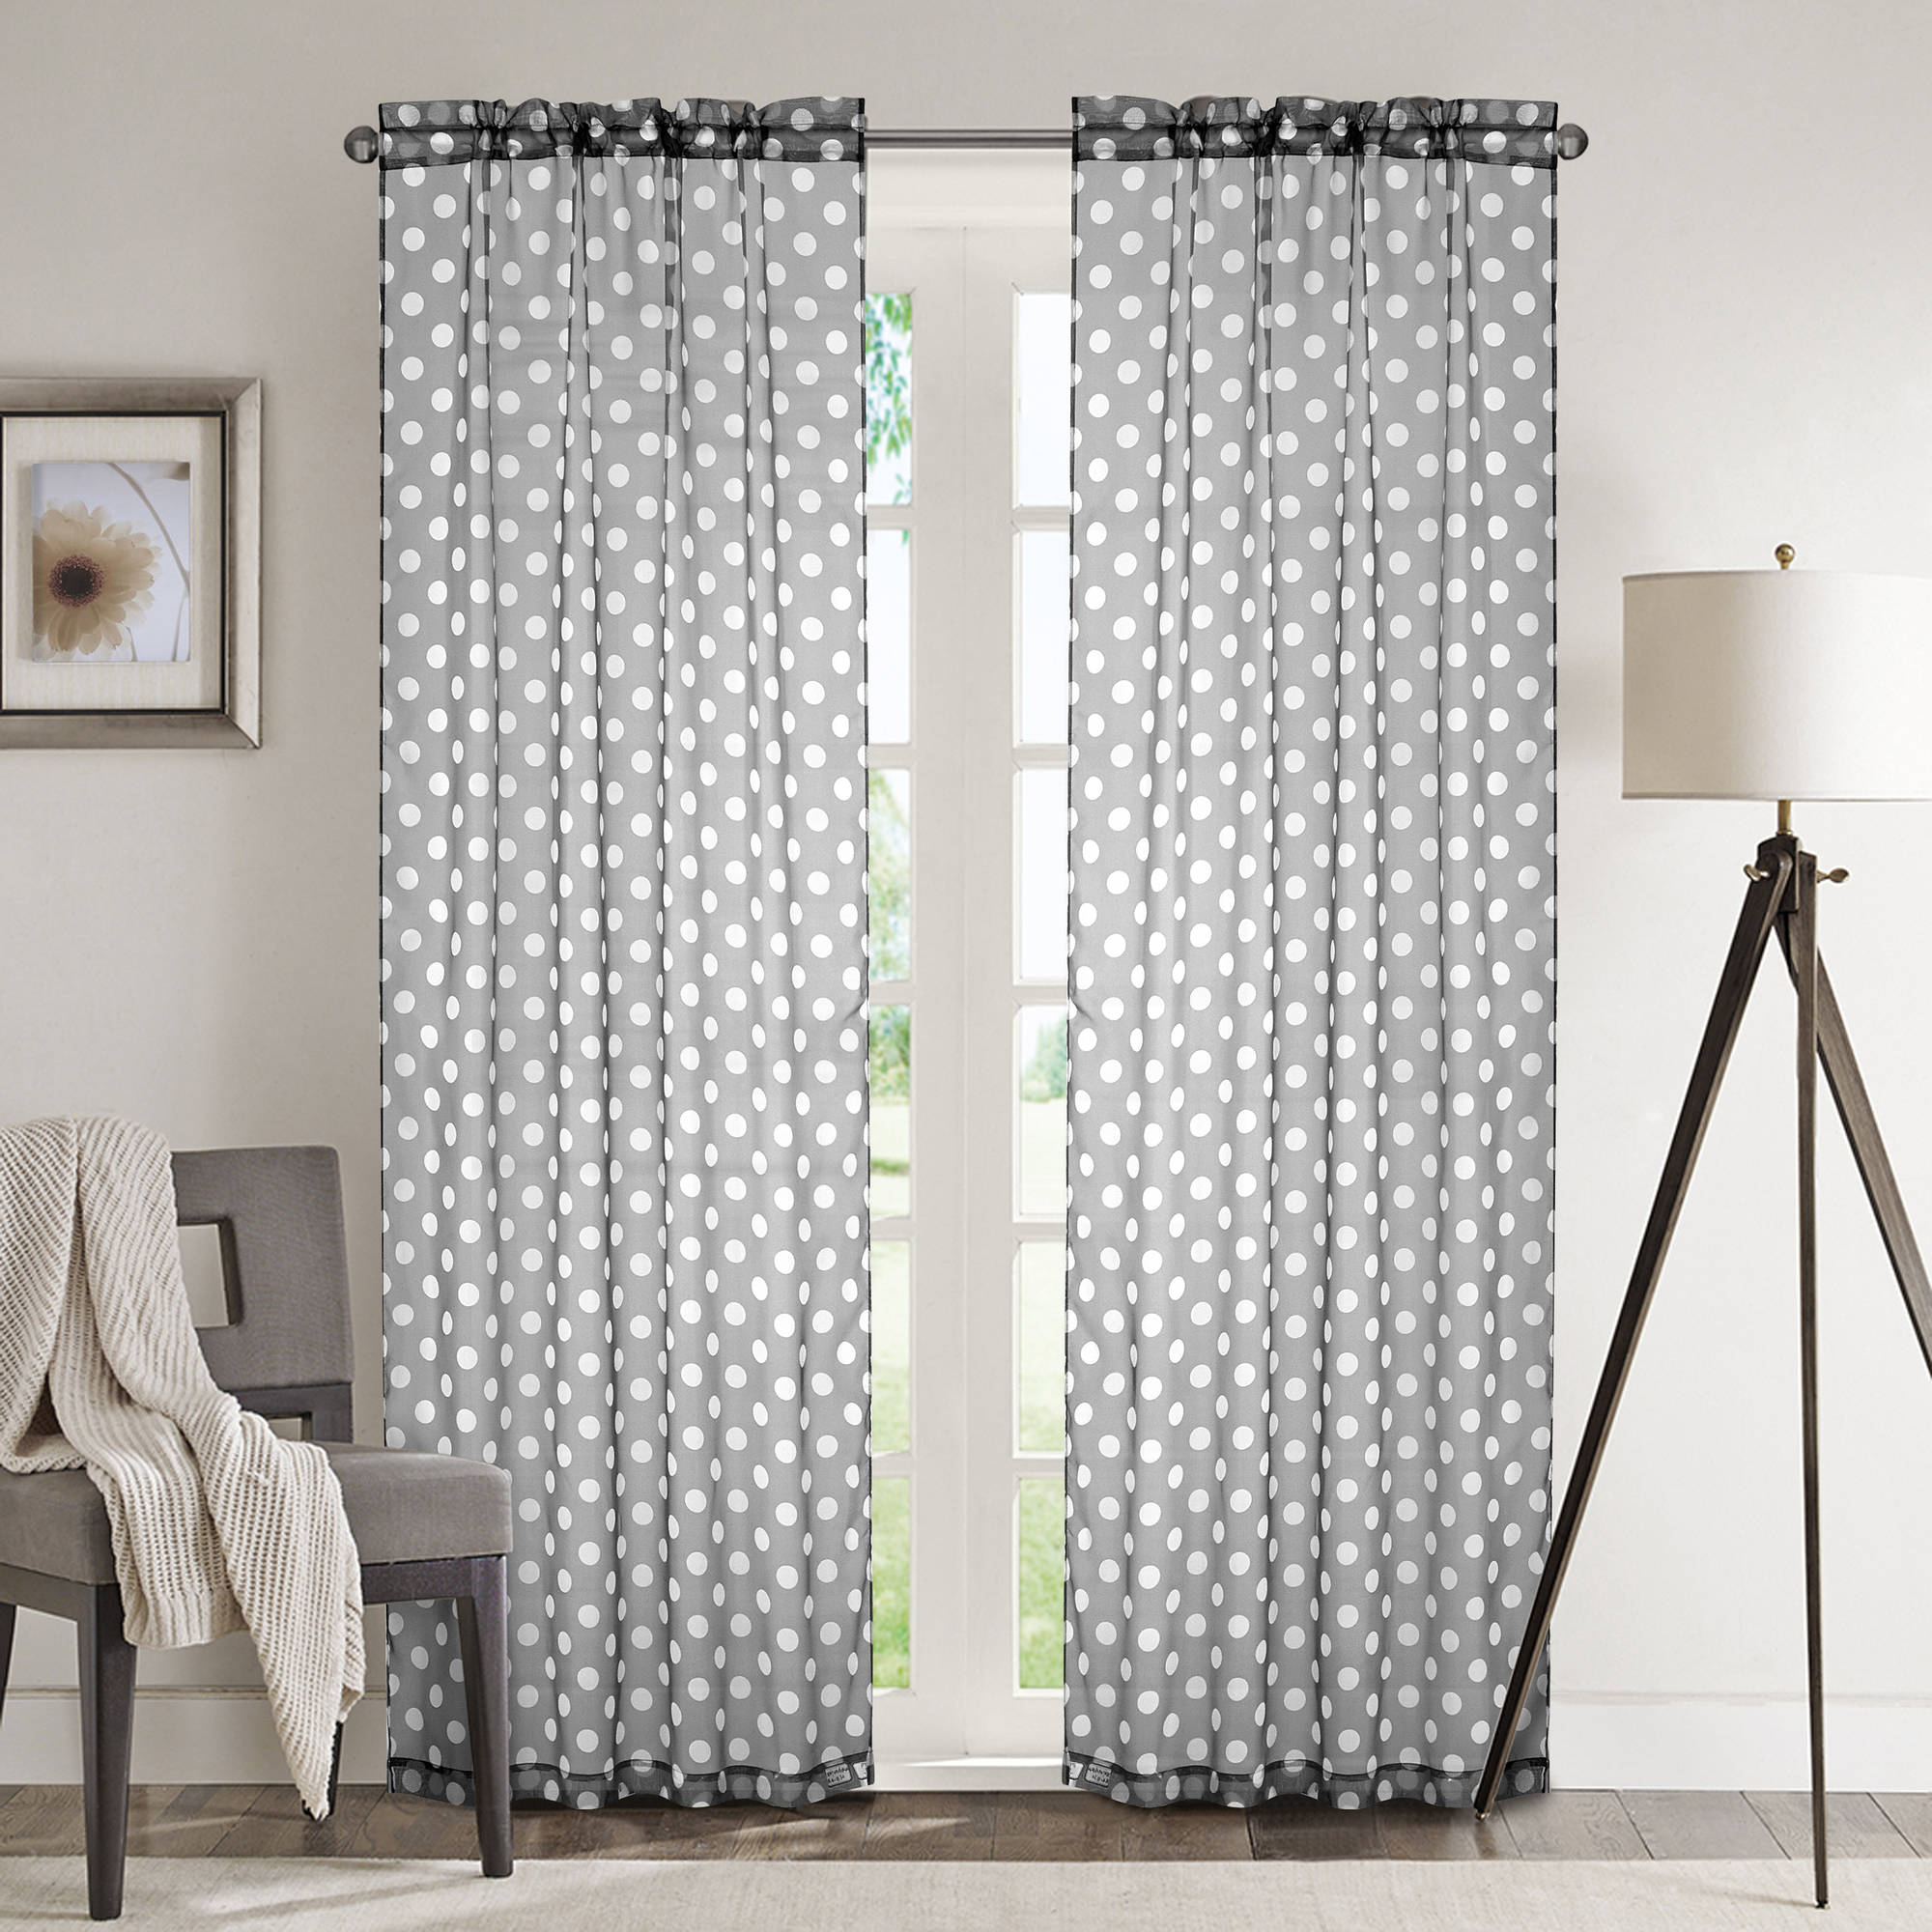 Mainstays Printed Sheer Window Panel, Set of 2